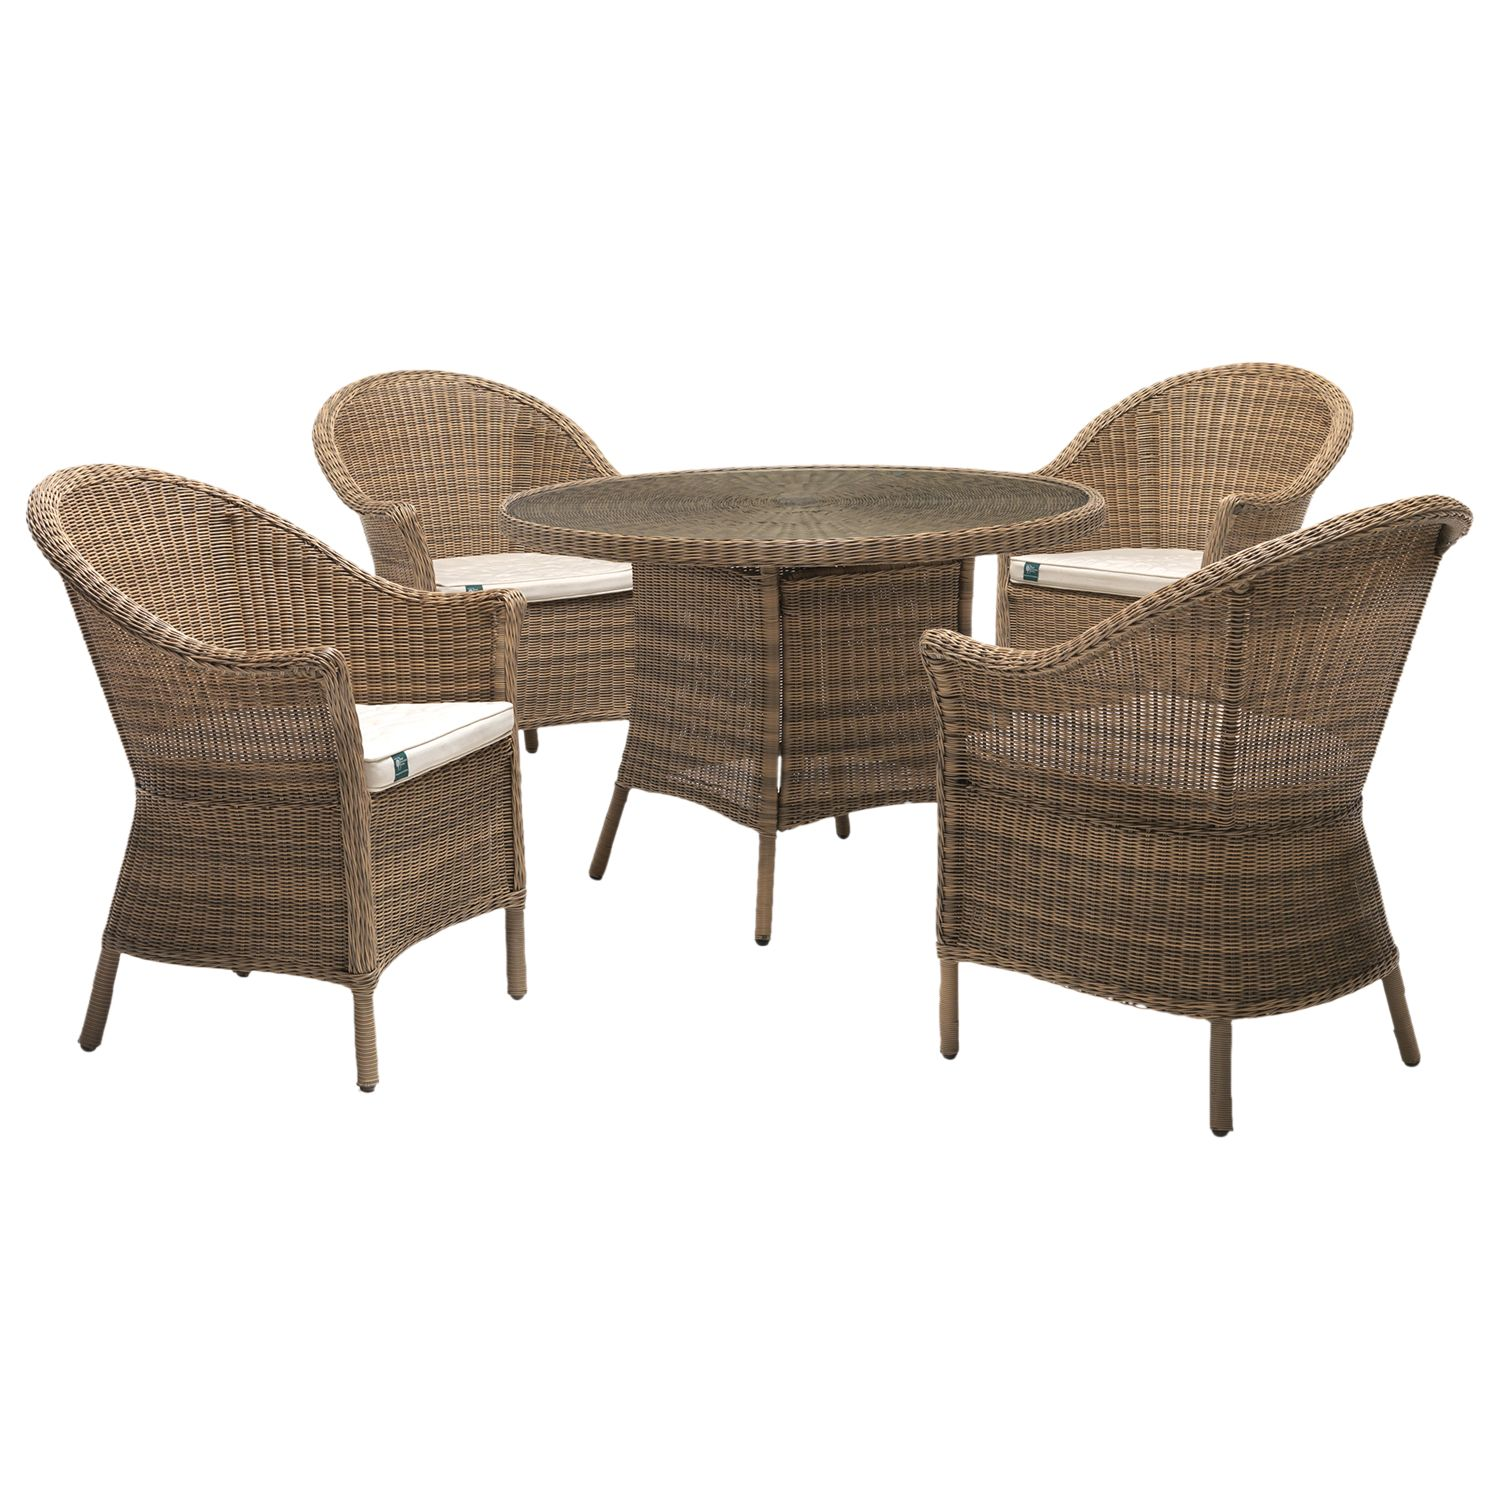 Kettler KETTLER RHS Harlow Carr 4 Seater Garden Table and Chairs Set, Natural